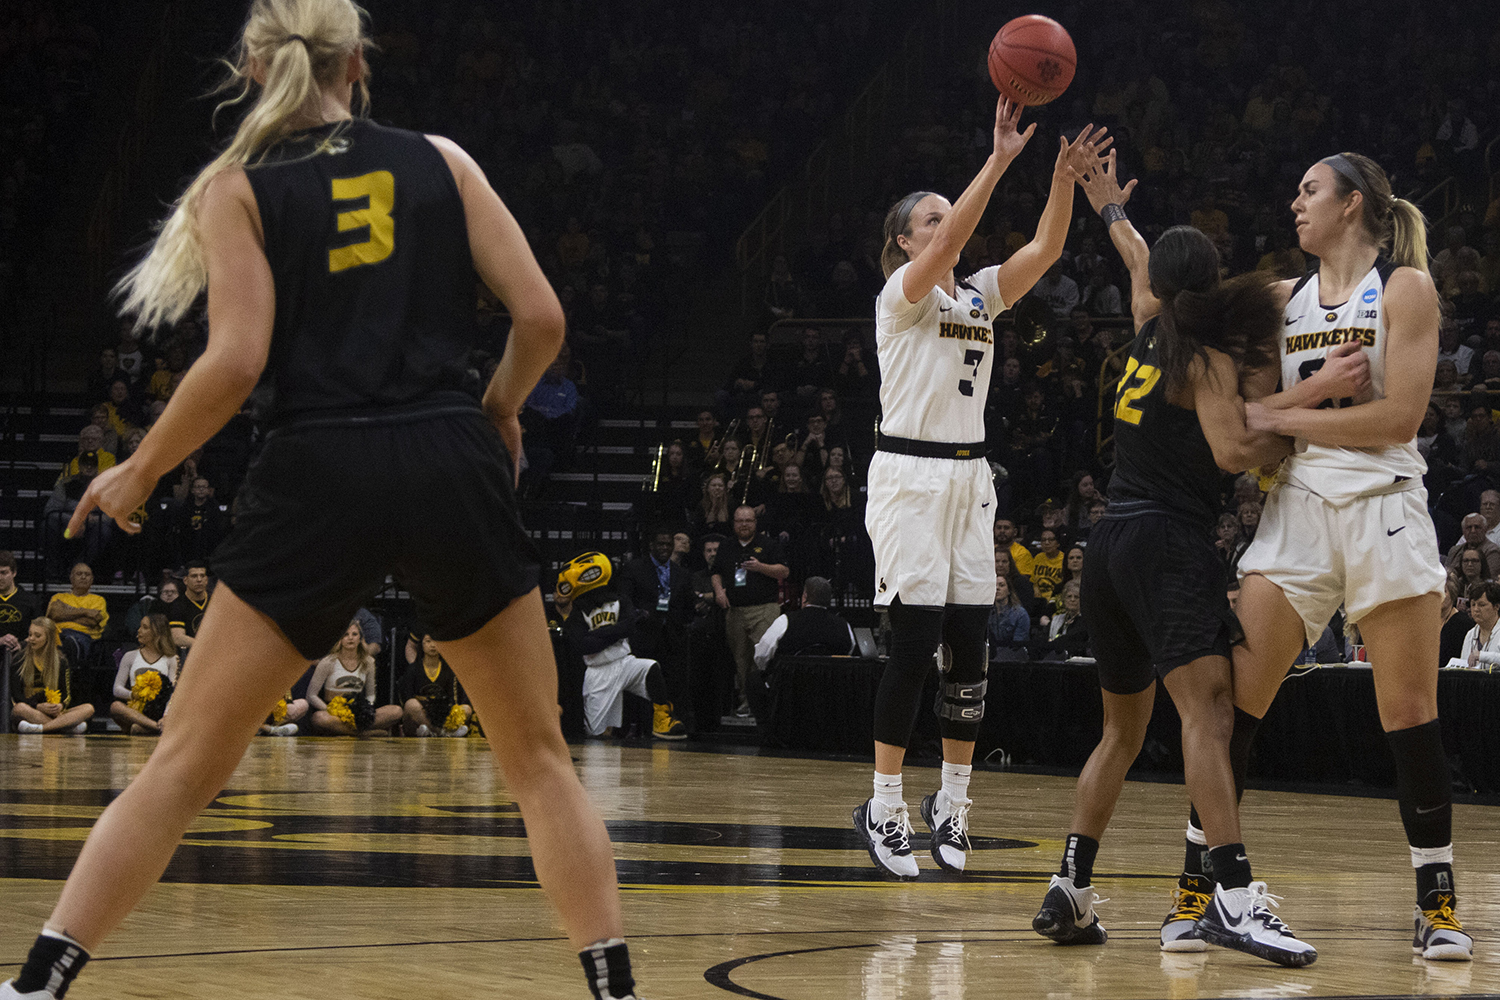 Iowa+guard+Makenzie+Meyer+attempts+a+3-pointer+during+the+Iowa%2FMizzou+NCAA+Tournament+second+round+women%27s+basketball+game+in+Carver-Hawkeye+Arena++on+Sunday%2C+March+24%2C+2019.+The+Hawkeyes+defeated+the+Tigers%2C+68-52.+